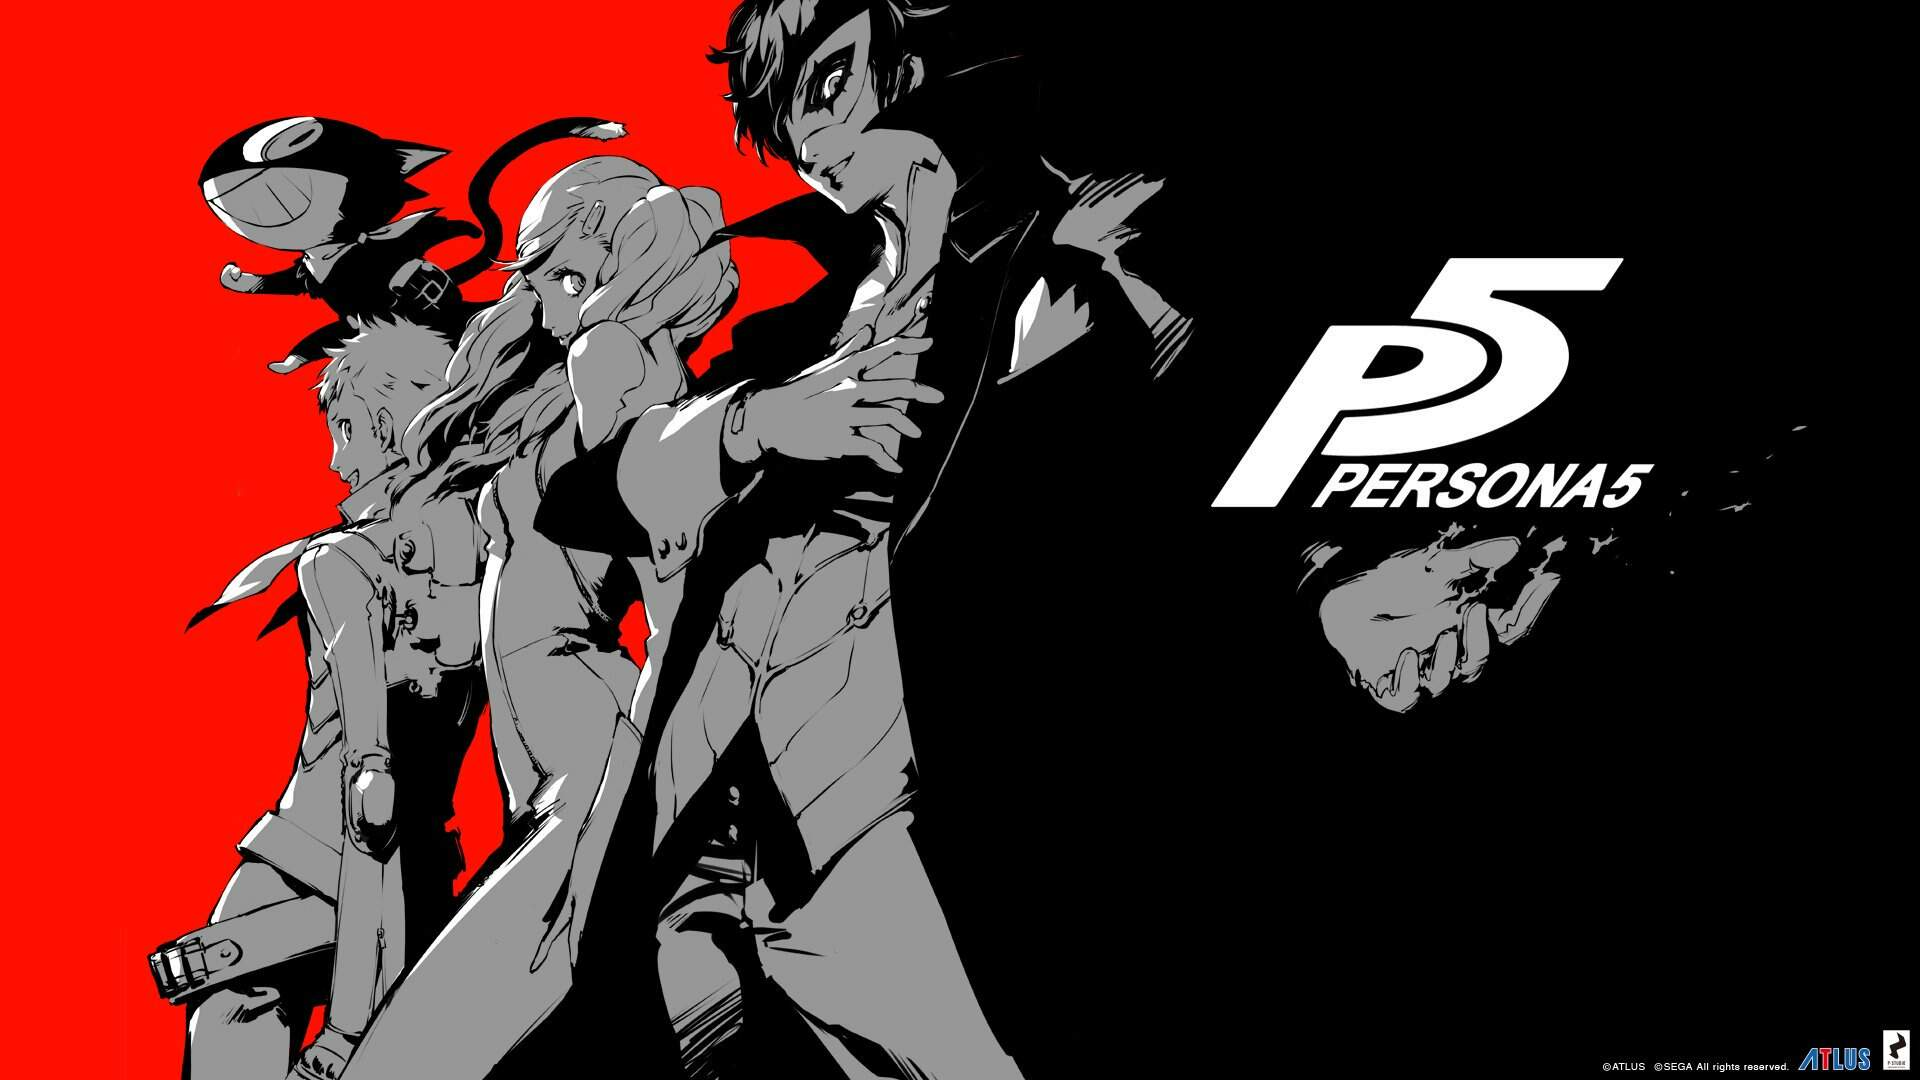 Persona 5 Confidant Guide - How to Max Out Your Social Links